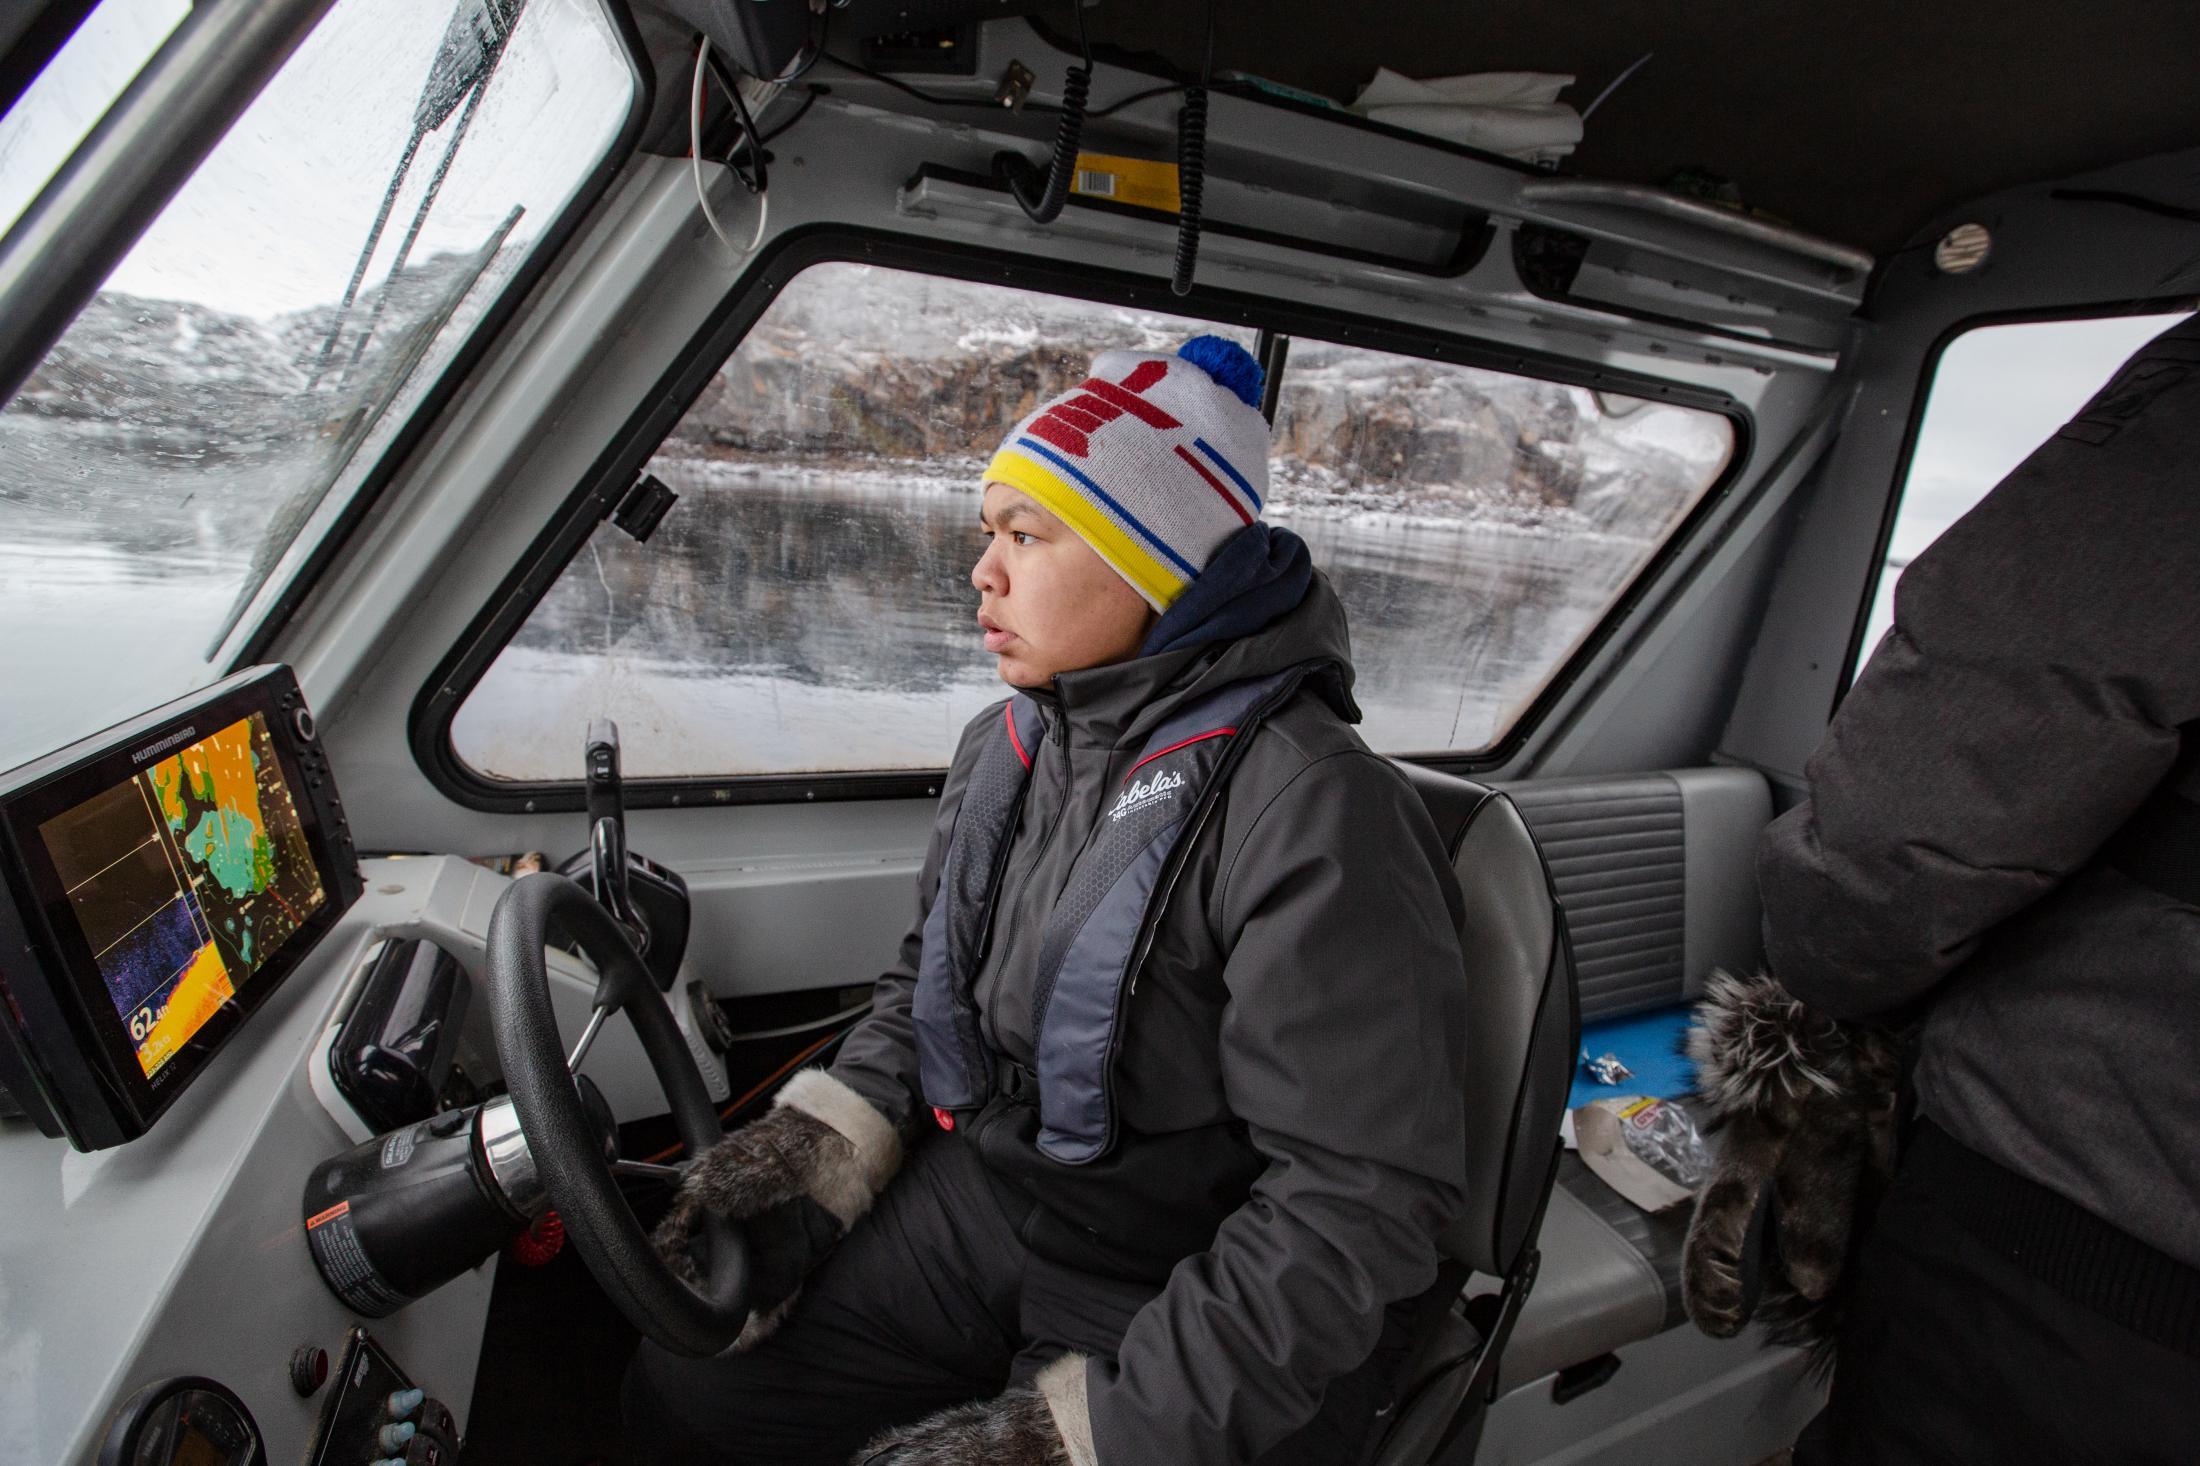 Damian Young drives the boat while Alex Flaherty is outside on the bow scanning the water for ringed seal.